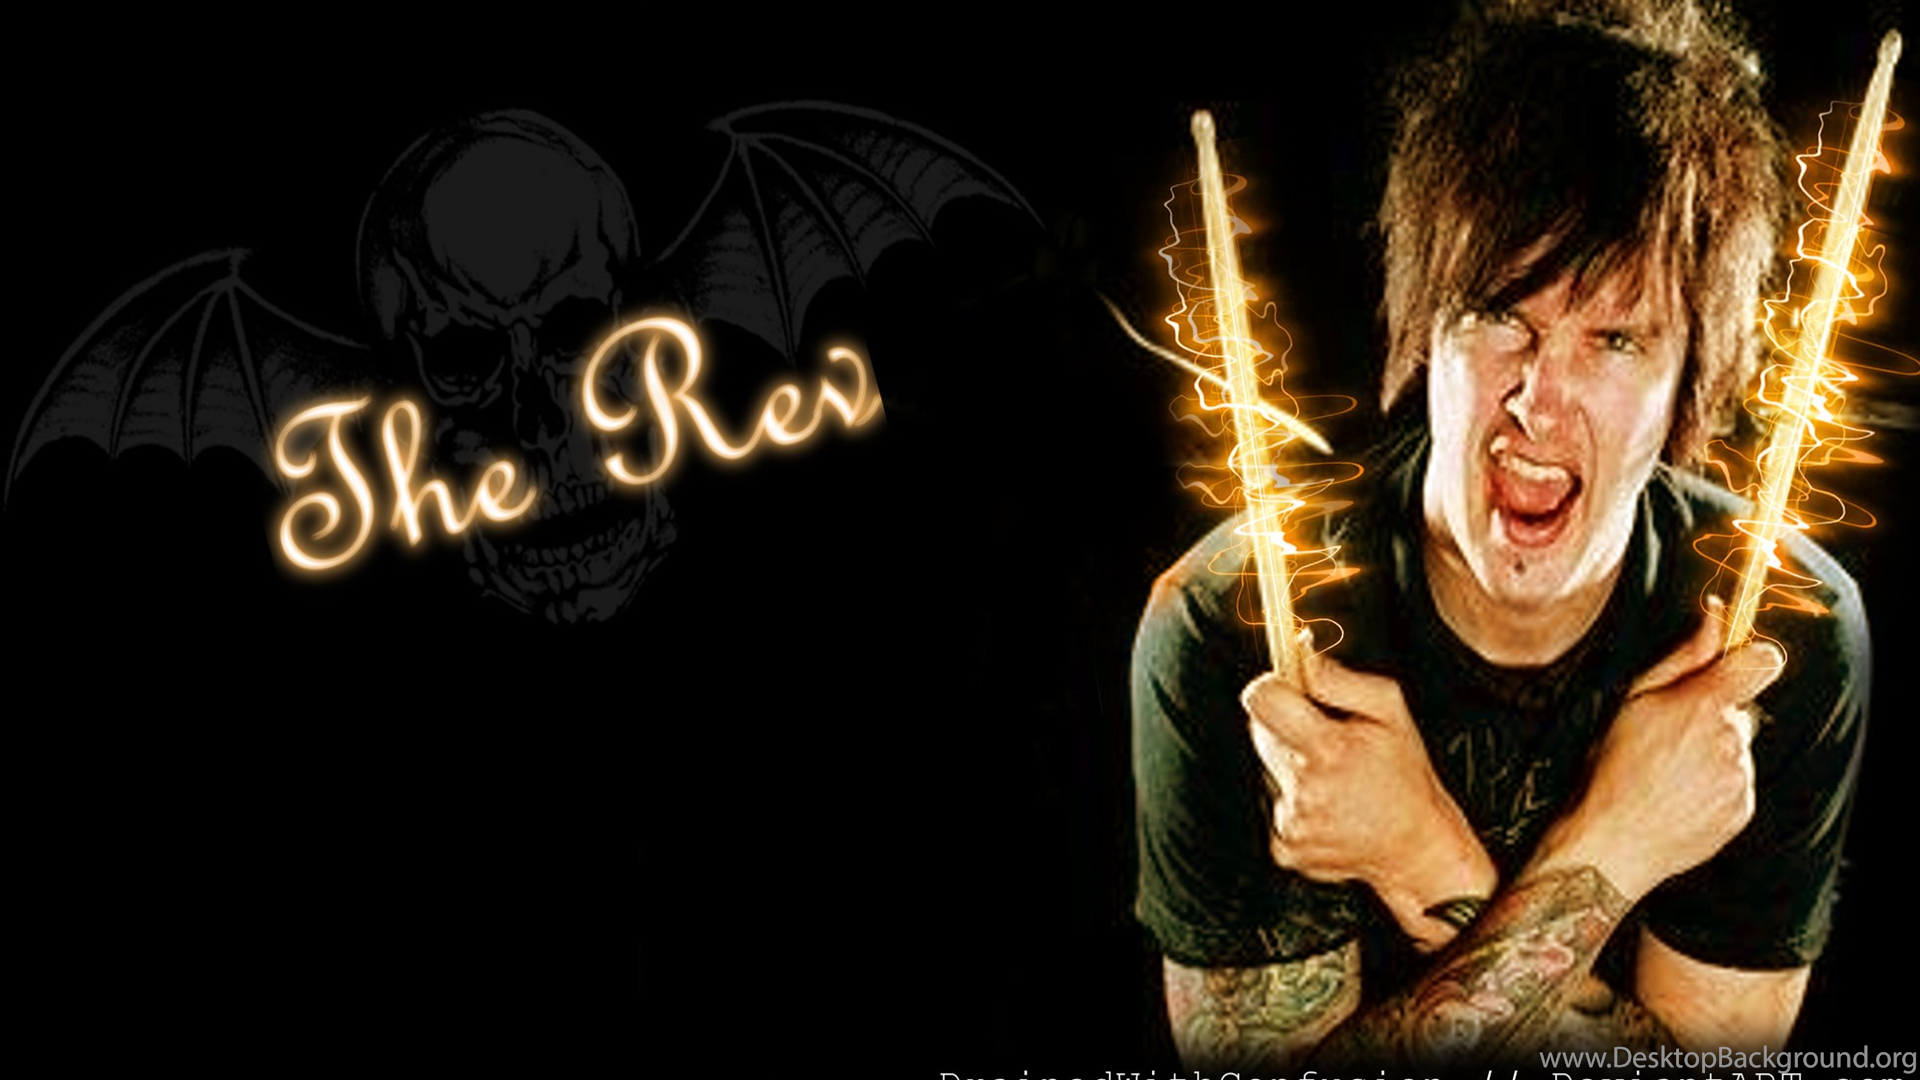 Pic The Rev Avenged Sevenfold Wallpapers Desktop Background